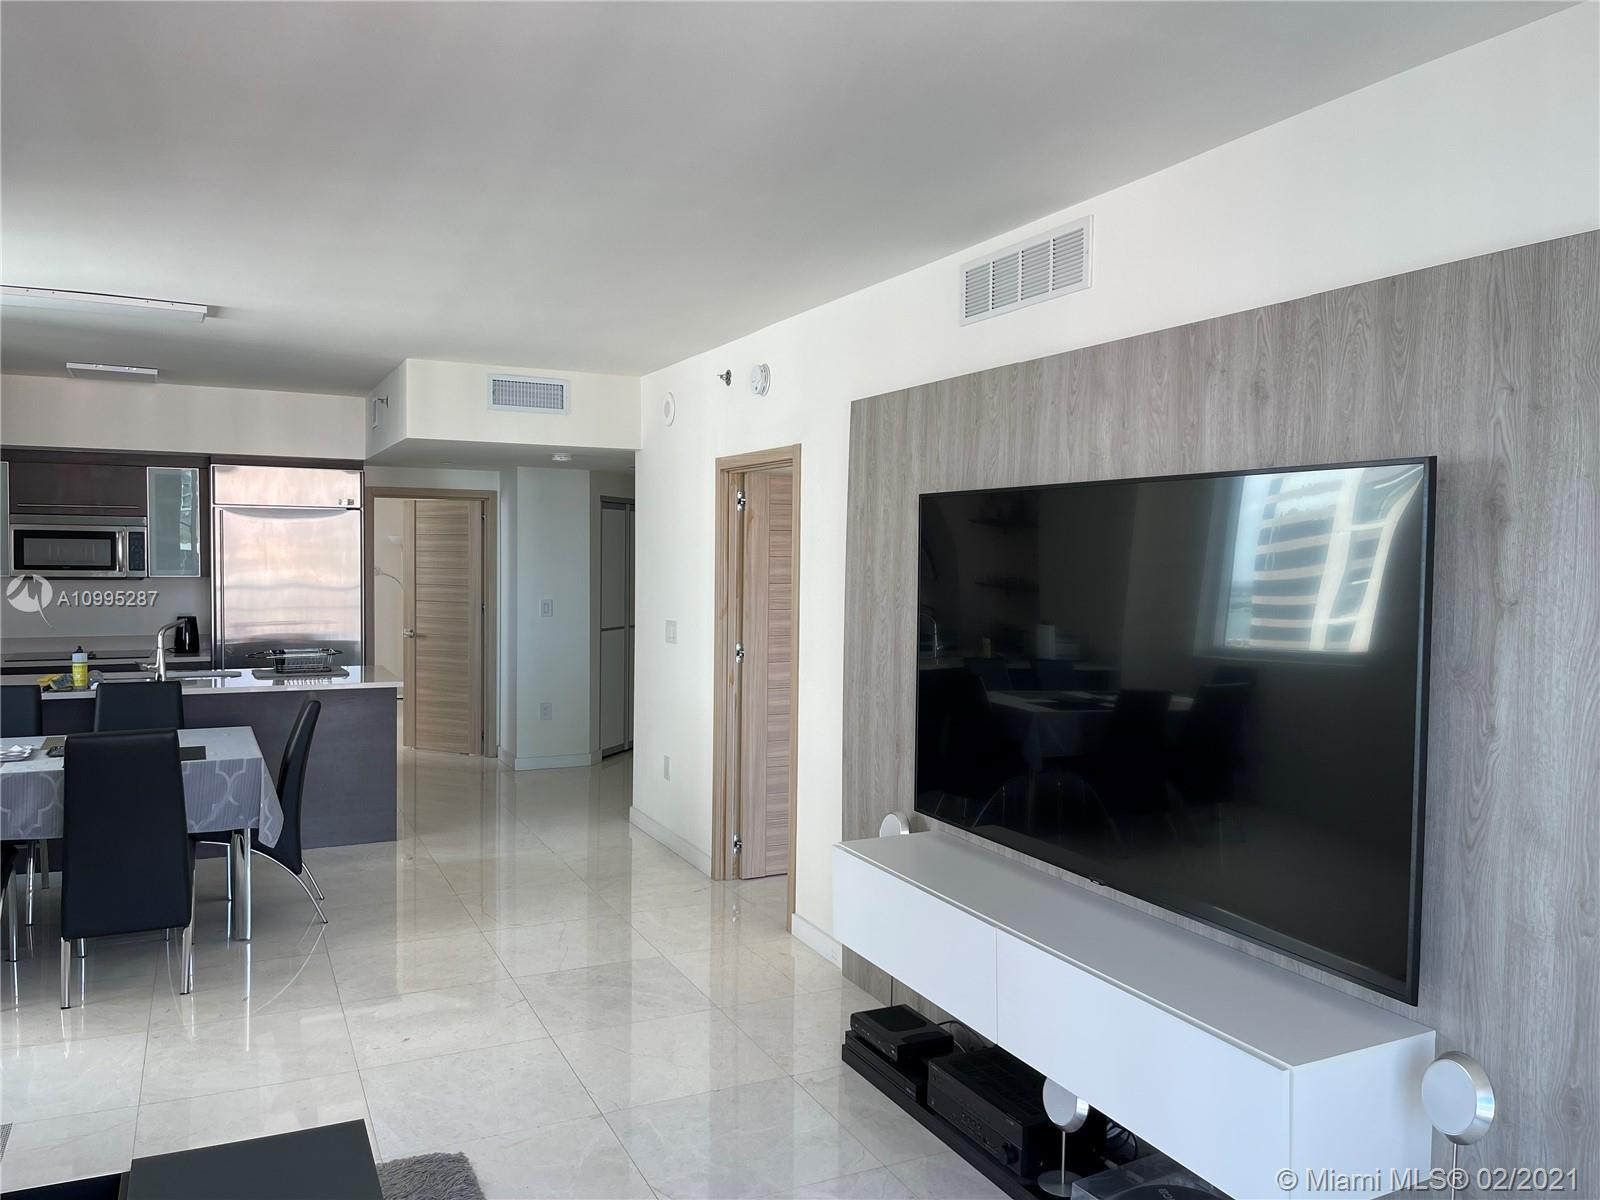 EXCEPTIONAL RENOVATED UNIT! 2 BED/2 BATH FACING THE RIVER AND MIAMI'S SKYLINE. CUSTOM MADE ITALIAN D